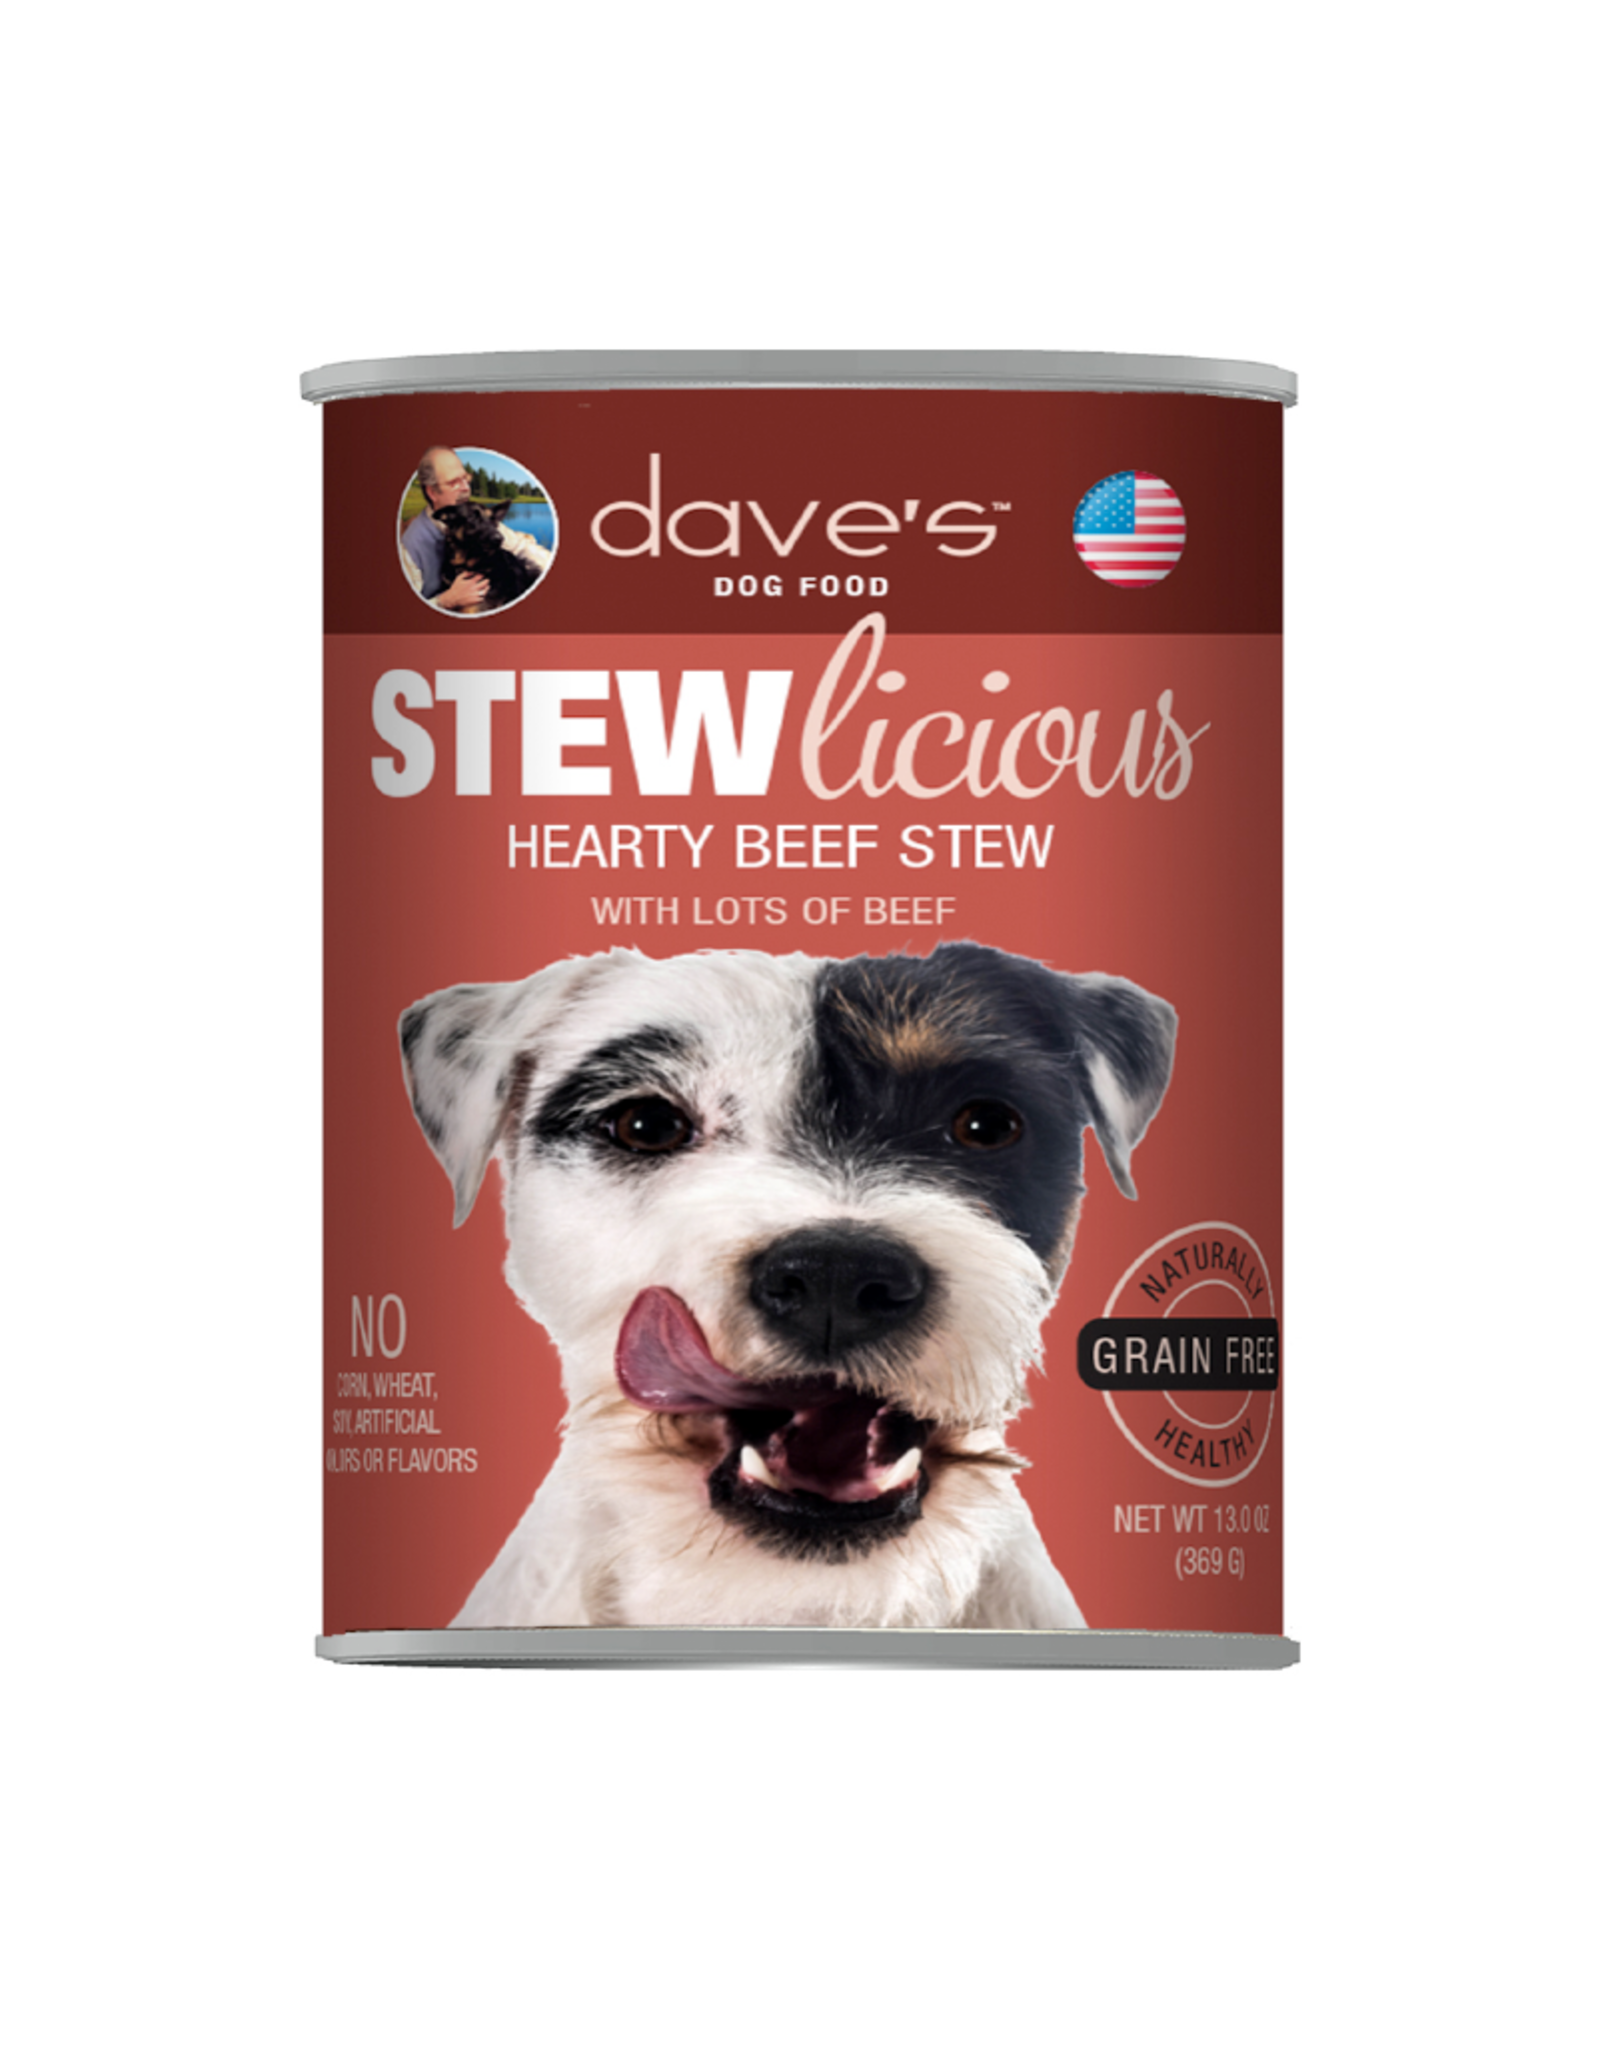 DAVE'S PET FOOD Dave's | Stewlicious Hearty Beef Stew Canned Dog Food